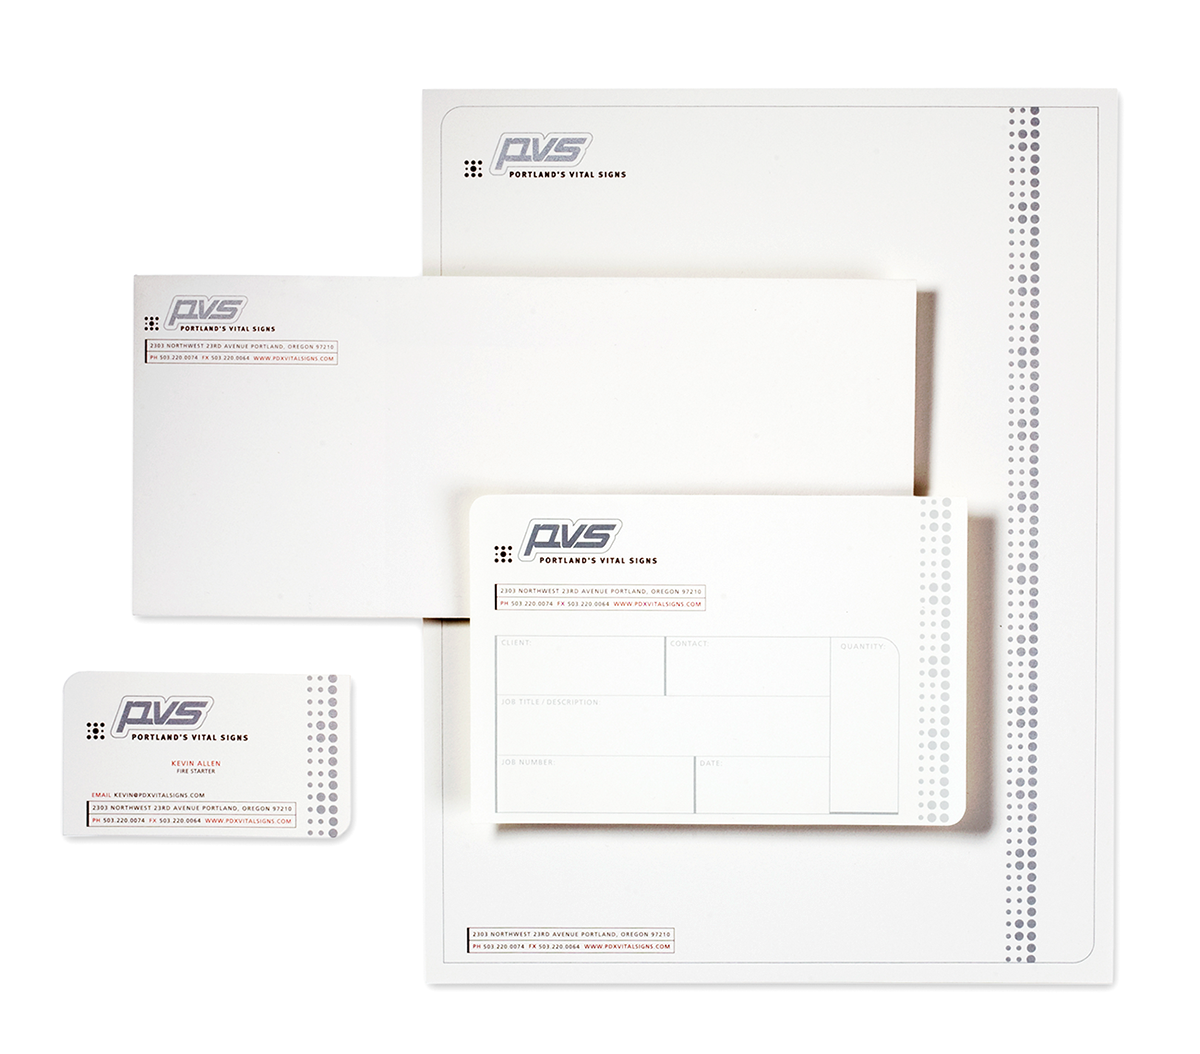 Brand identity package graphic design with business card, envelope, letterhead.